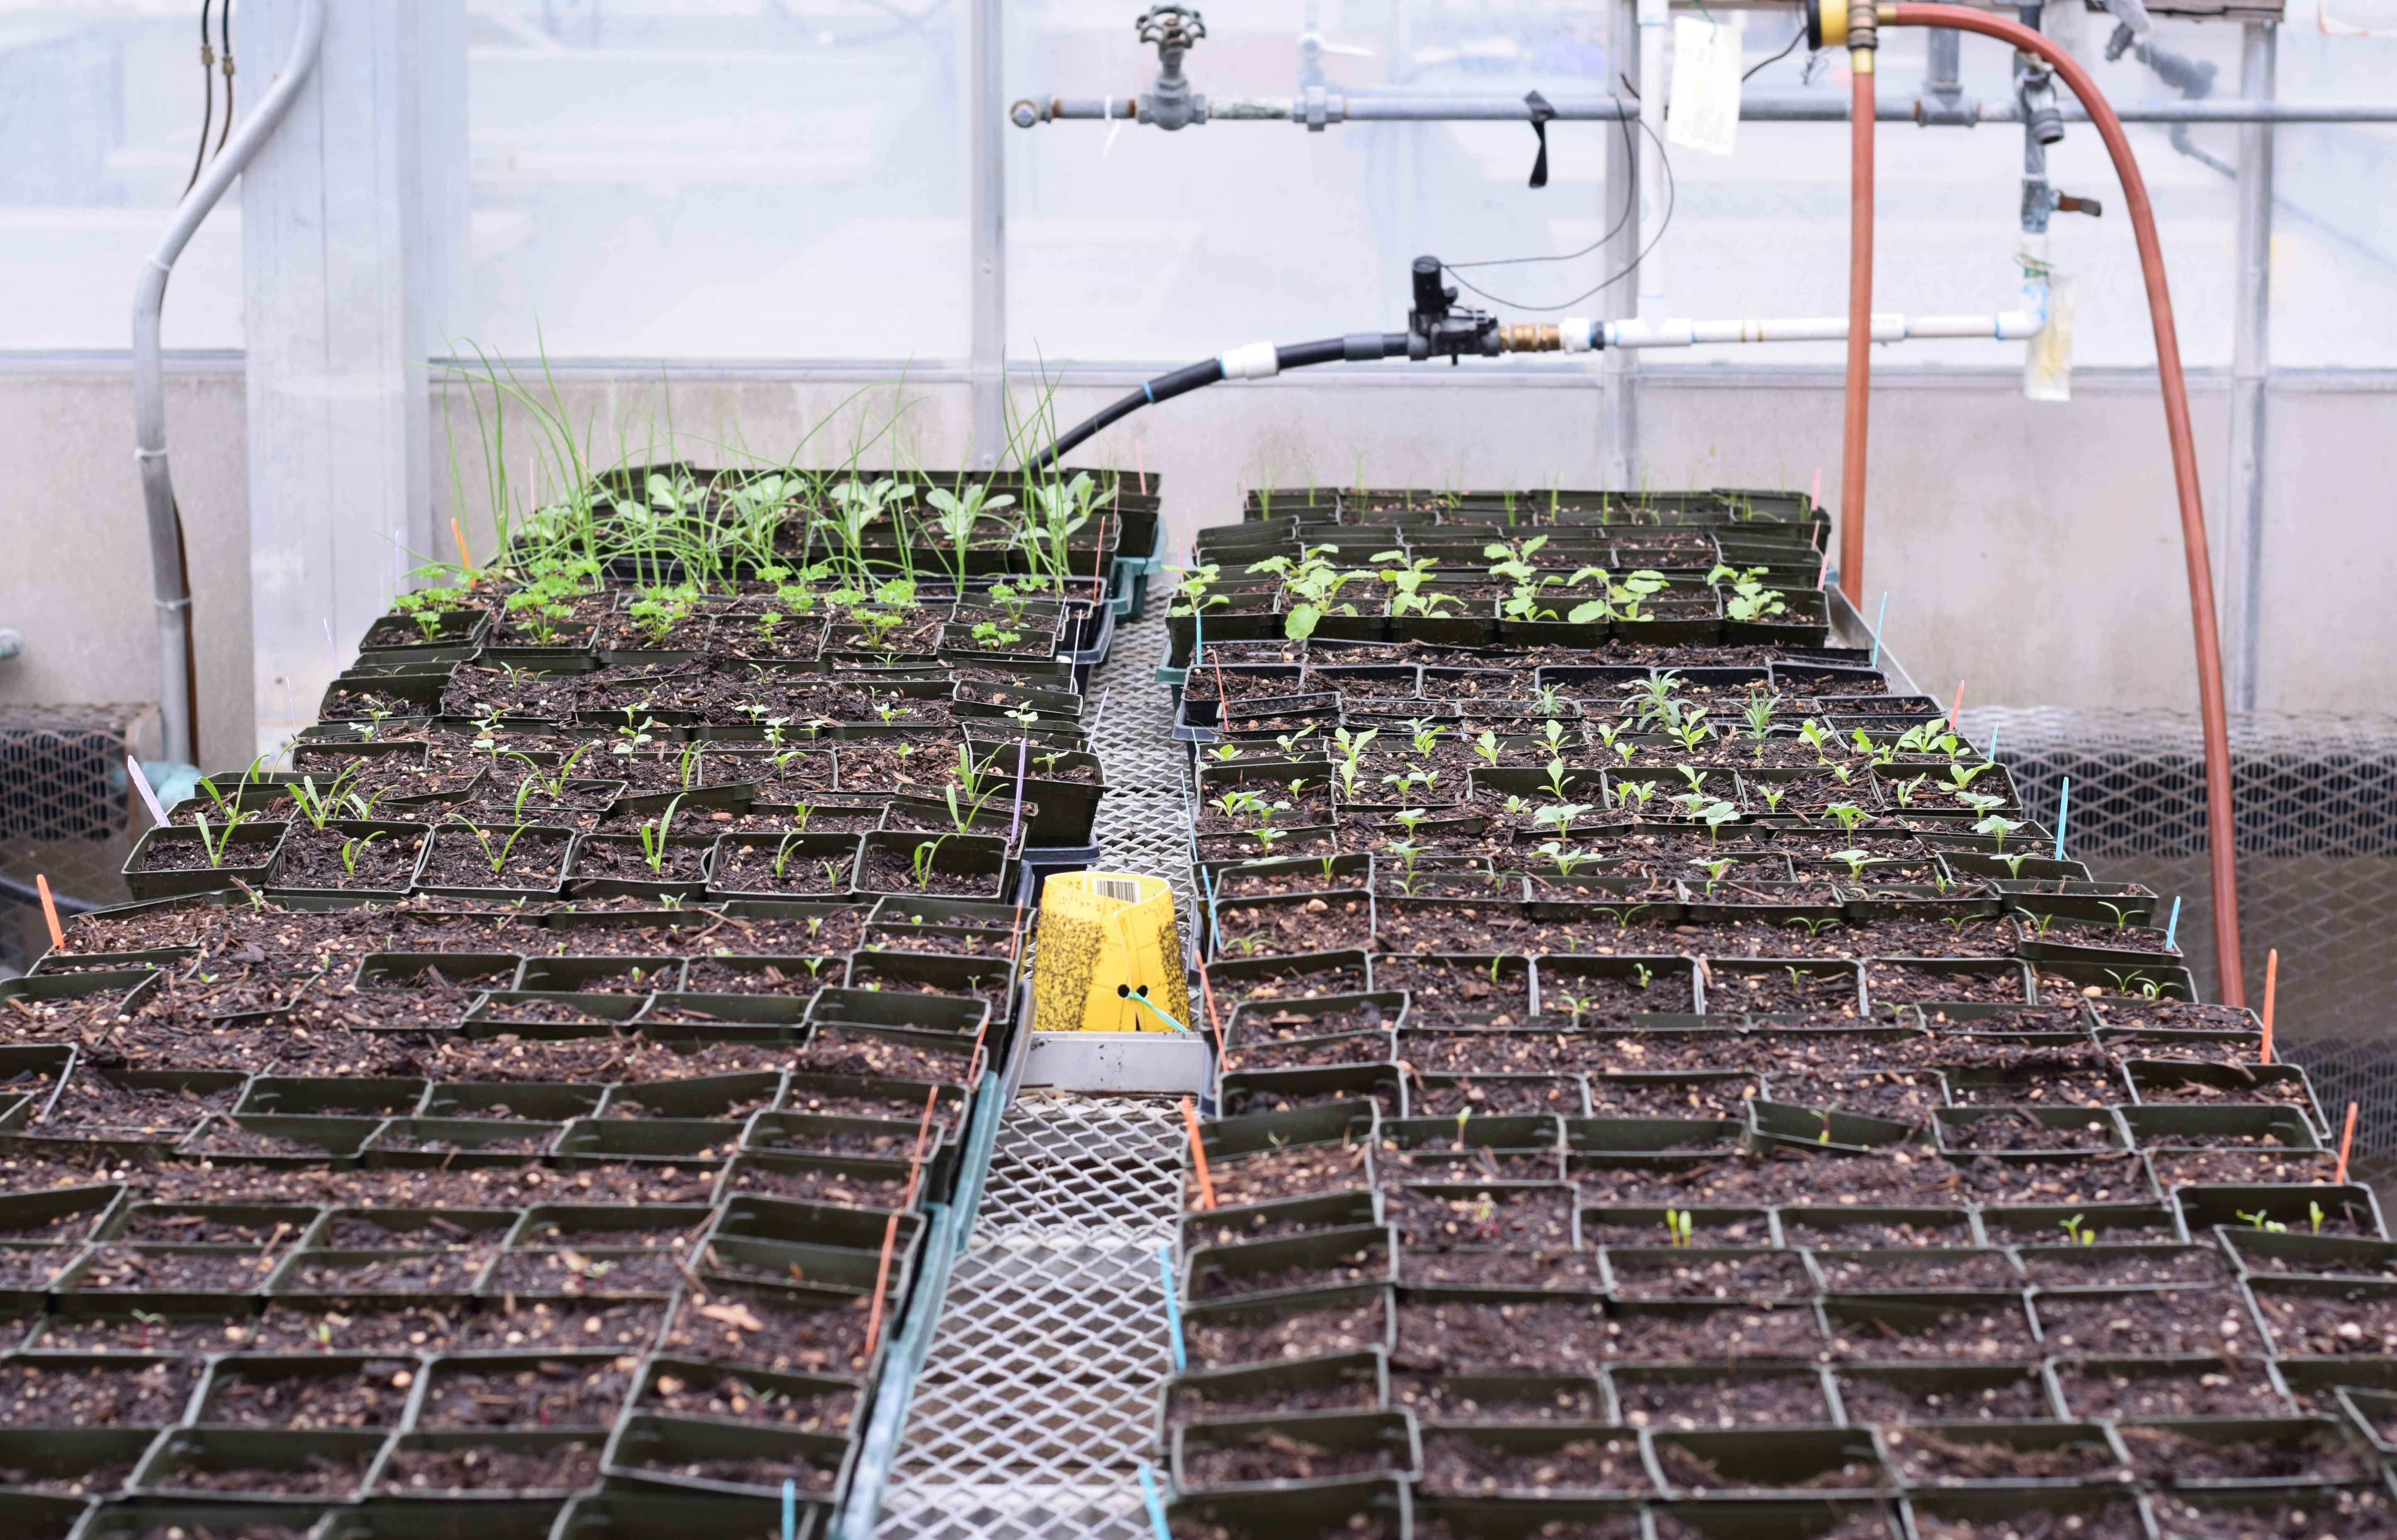 research plants in a greenhouse